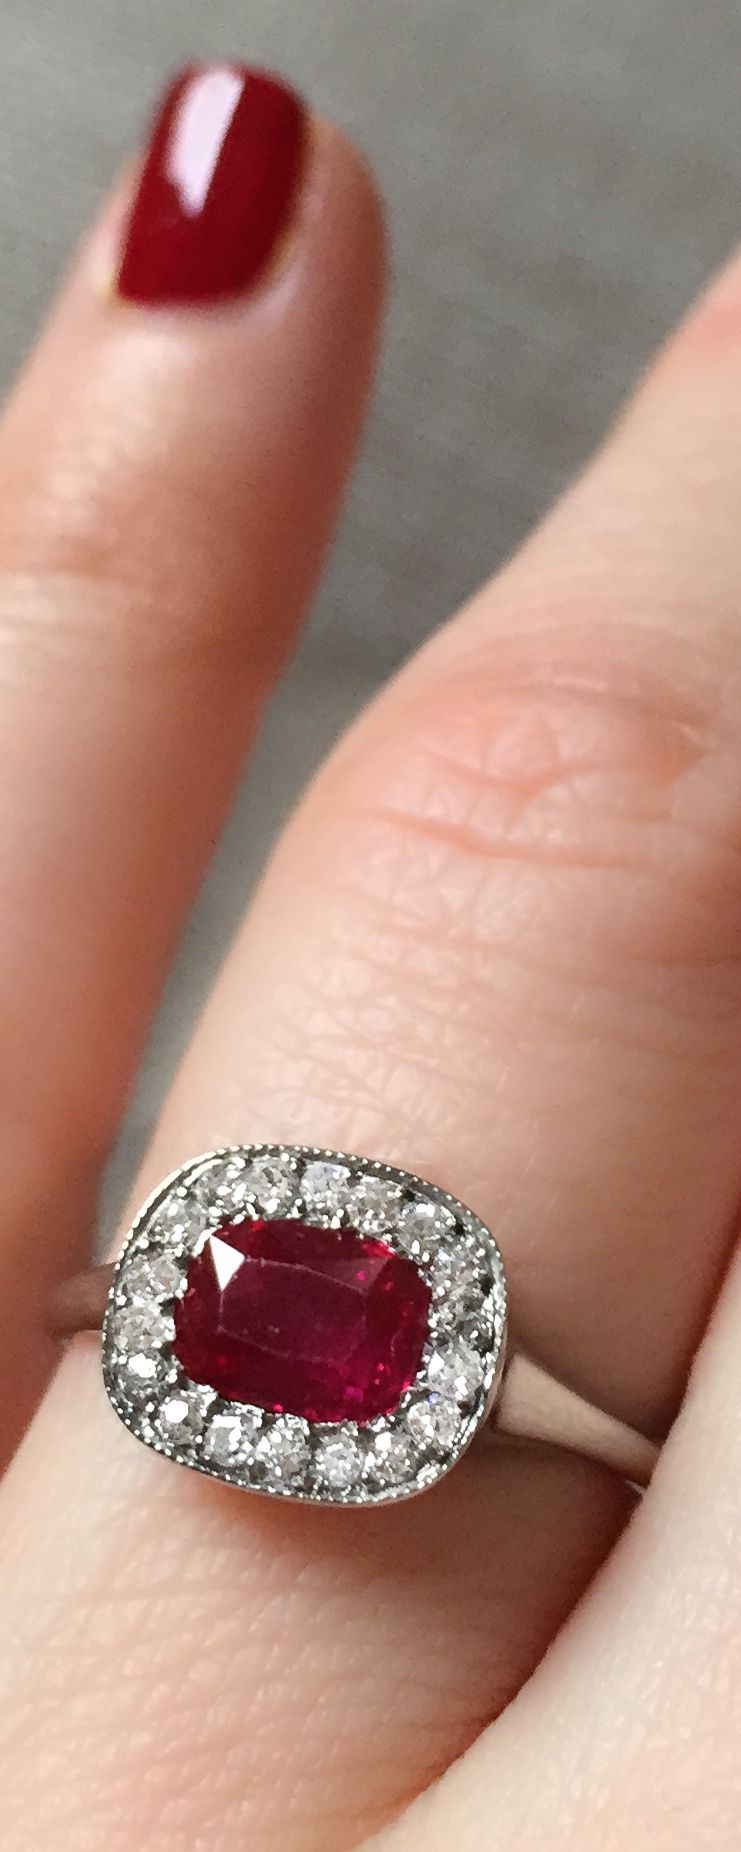 My Ruby Was Arleast Theinal Gewelary With Its Valuable Behavior But You  Smallizes Him By · Engagement Rings Uniquediamond Engagement Ringscelebrity